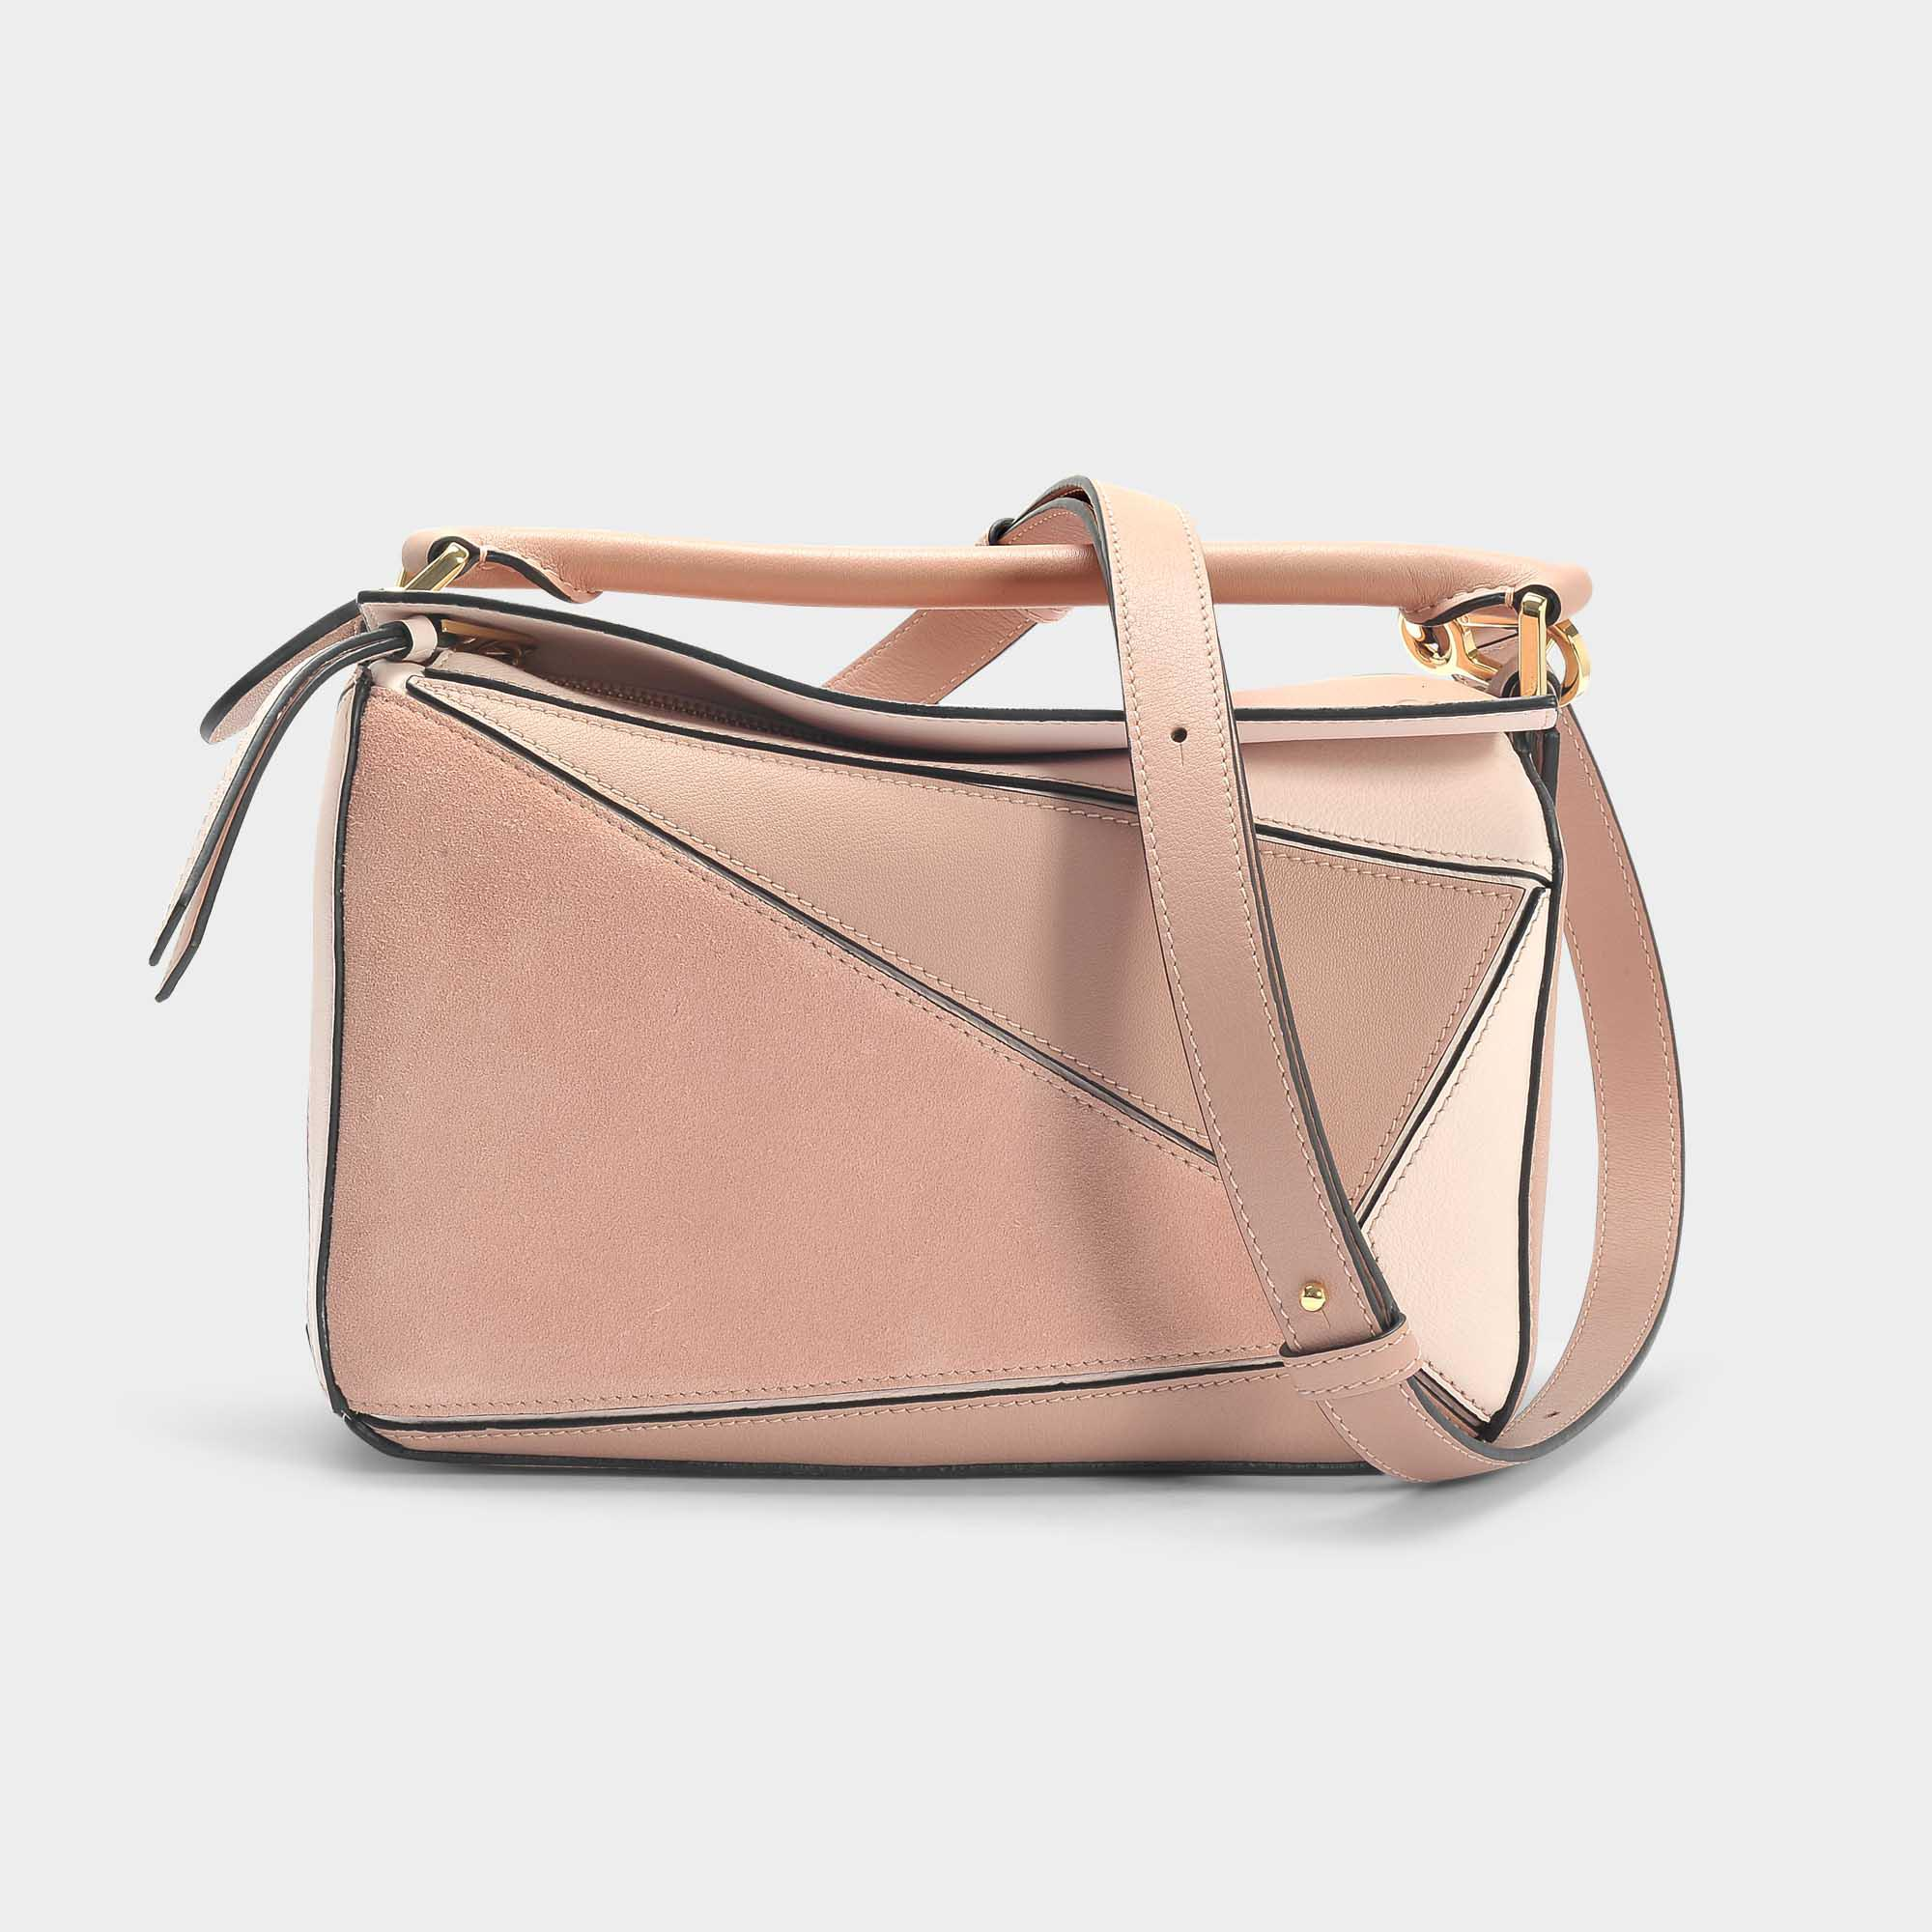 a046a45c33e8 Lyst - Loewe Puzzle Small Bag In Brown Calfskin in Pink